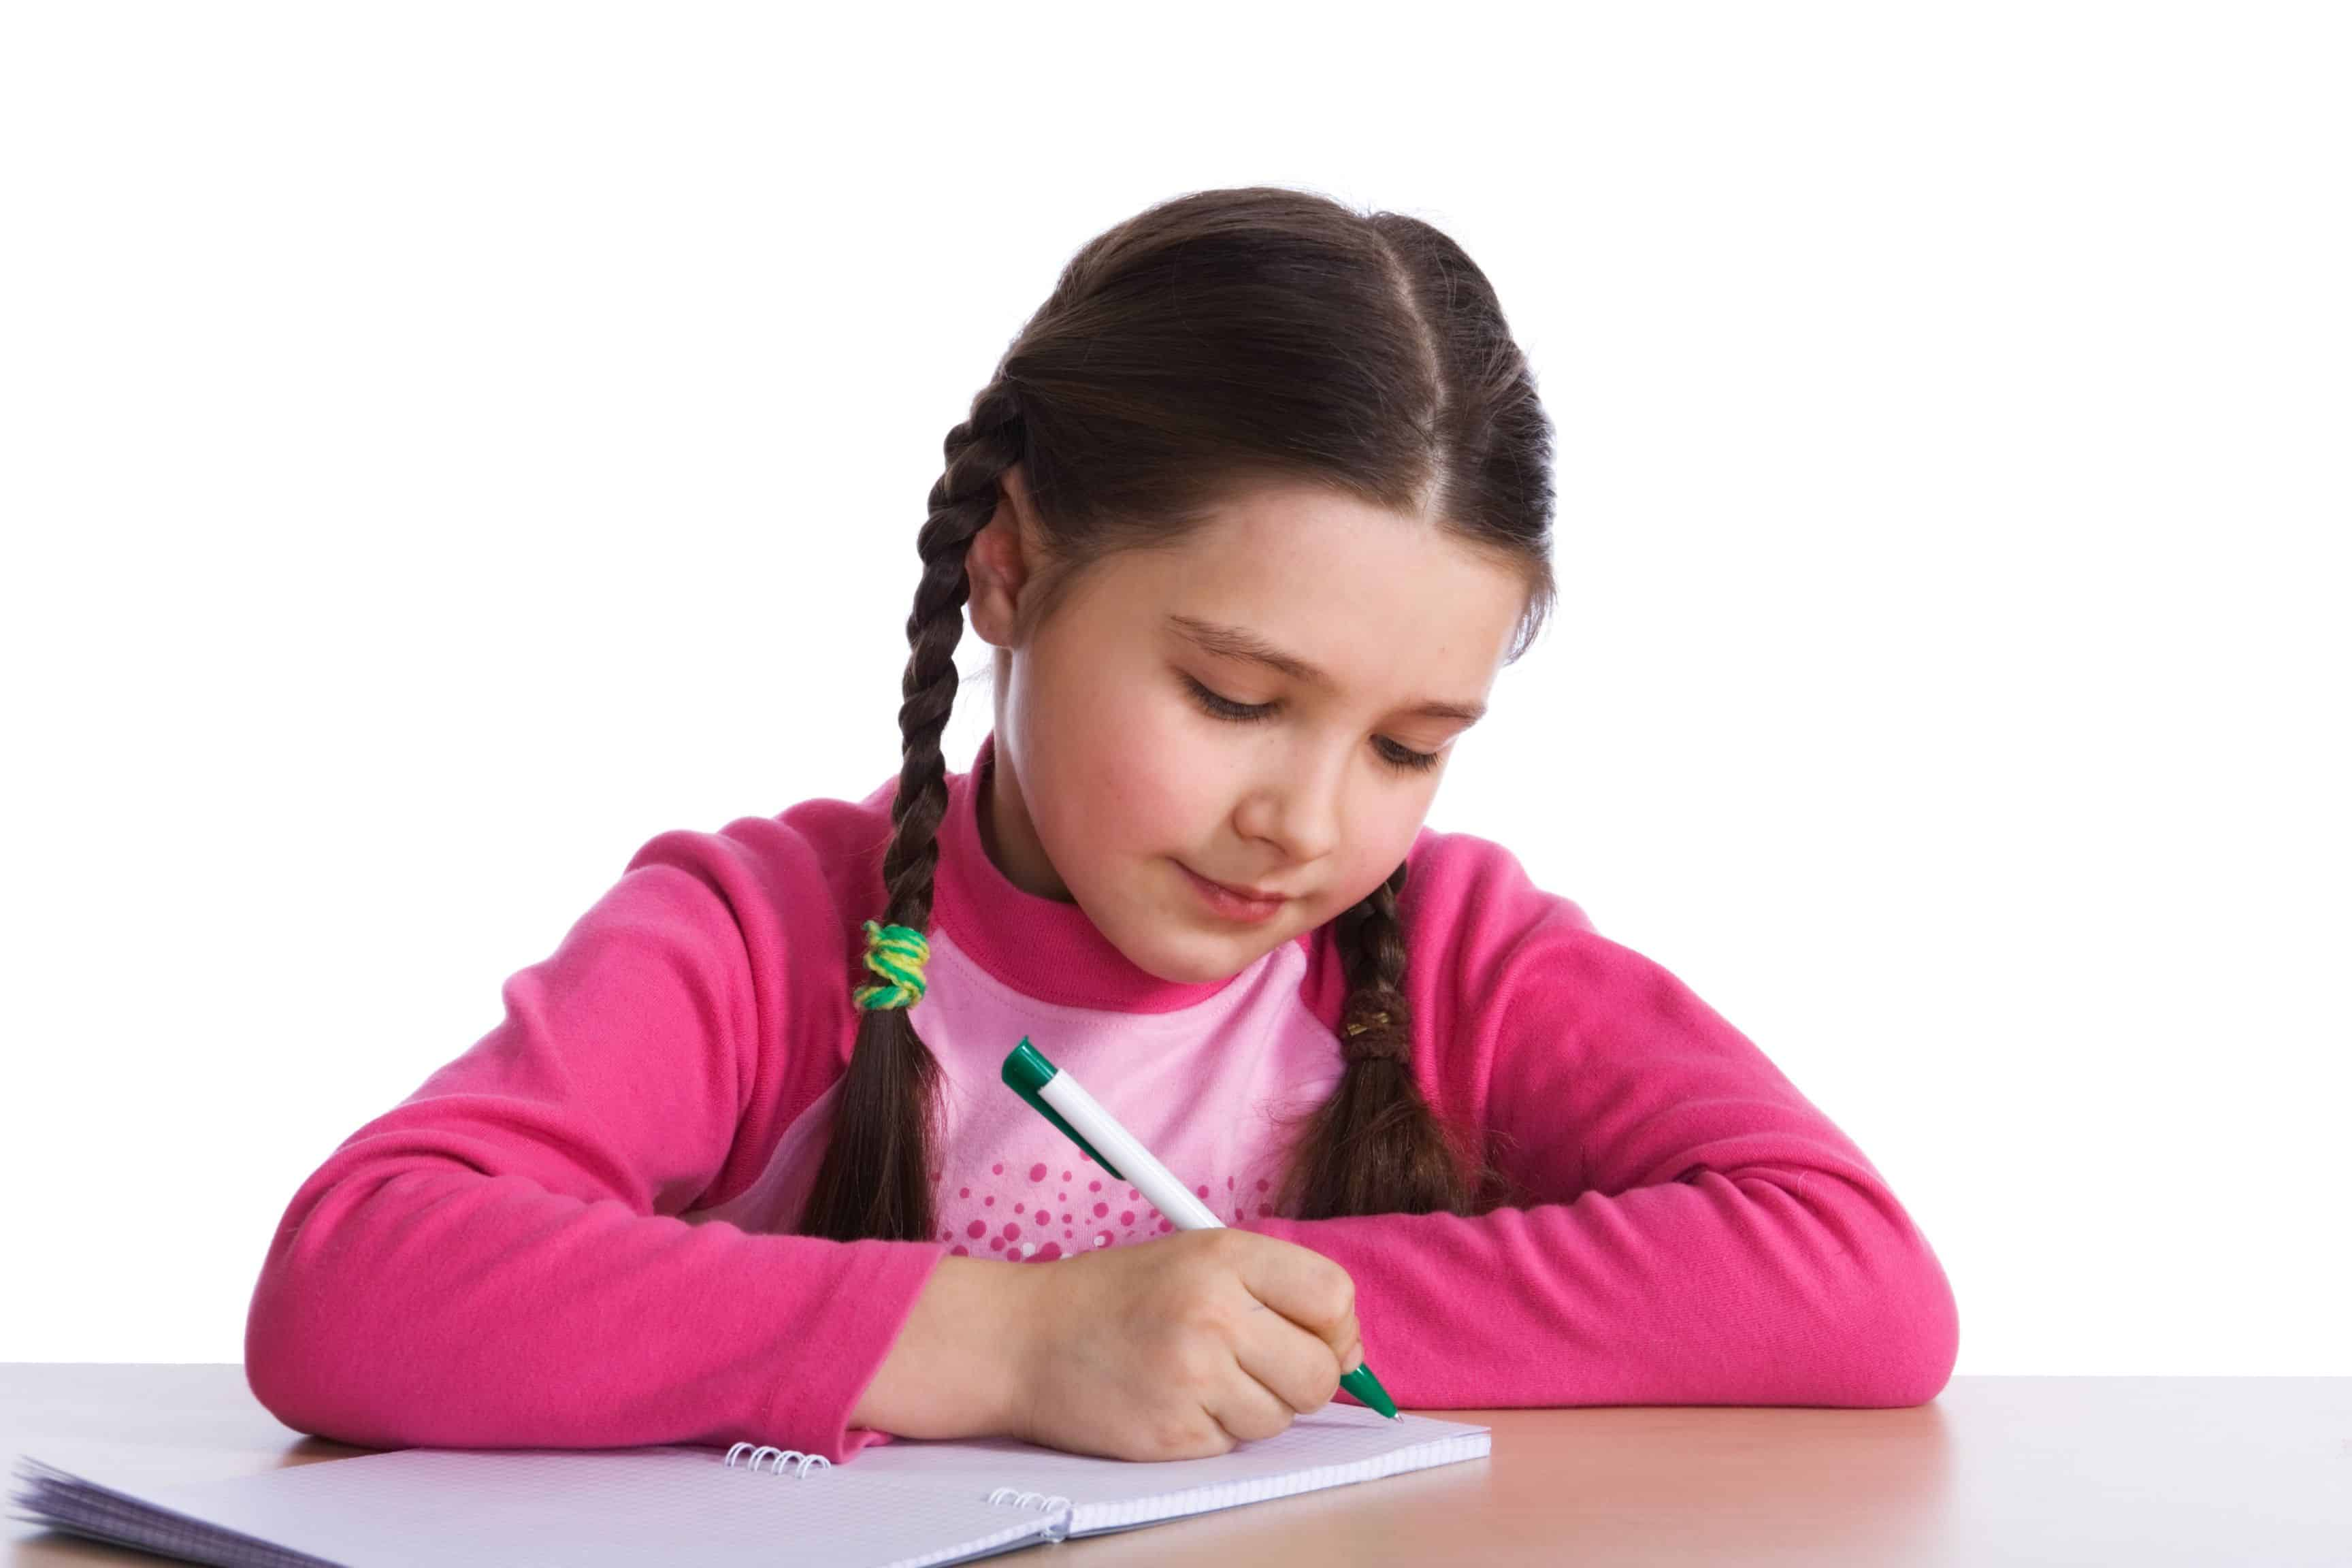 help essay writing children At the website of any essay writing service, you'll find great guidelines and samples of various types of papers give few of them to your kid to read, and help them envision what a proper essay looks like.